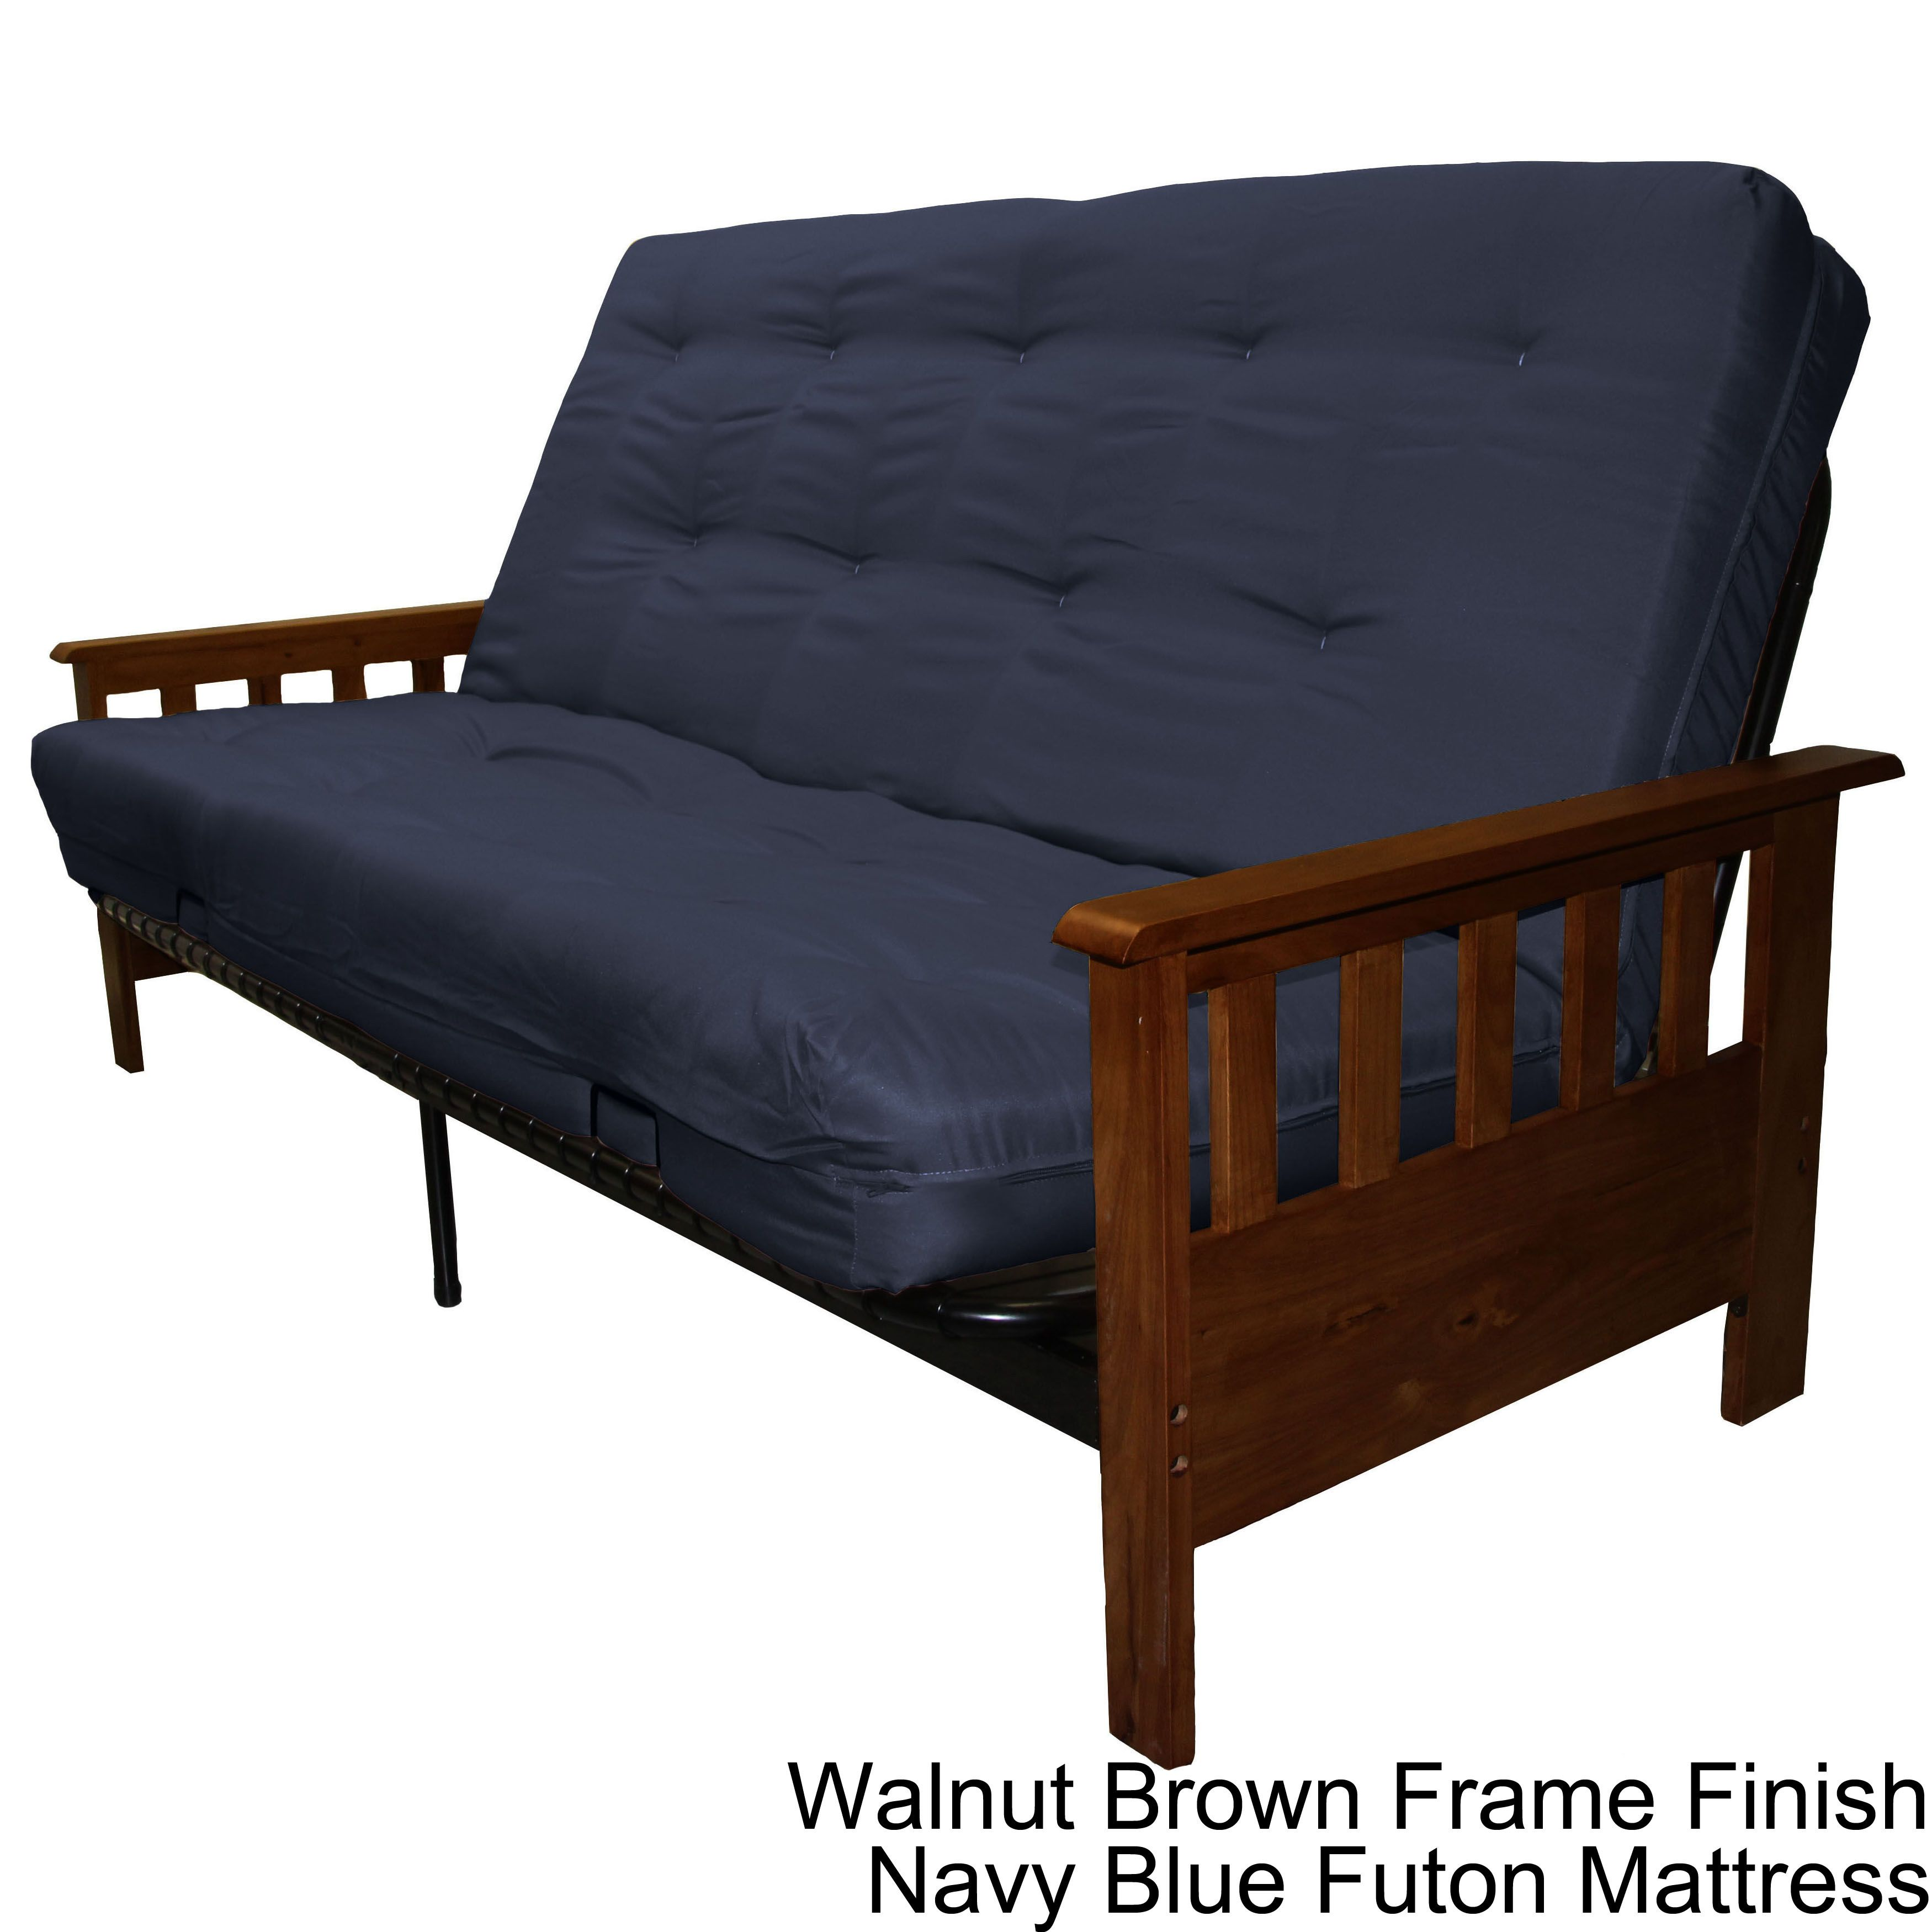 queen size futon frame convertible sofa bed epic provo queensize missionstyle frame mattress futon set walnut brown frame finish with navy blue queen mattress